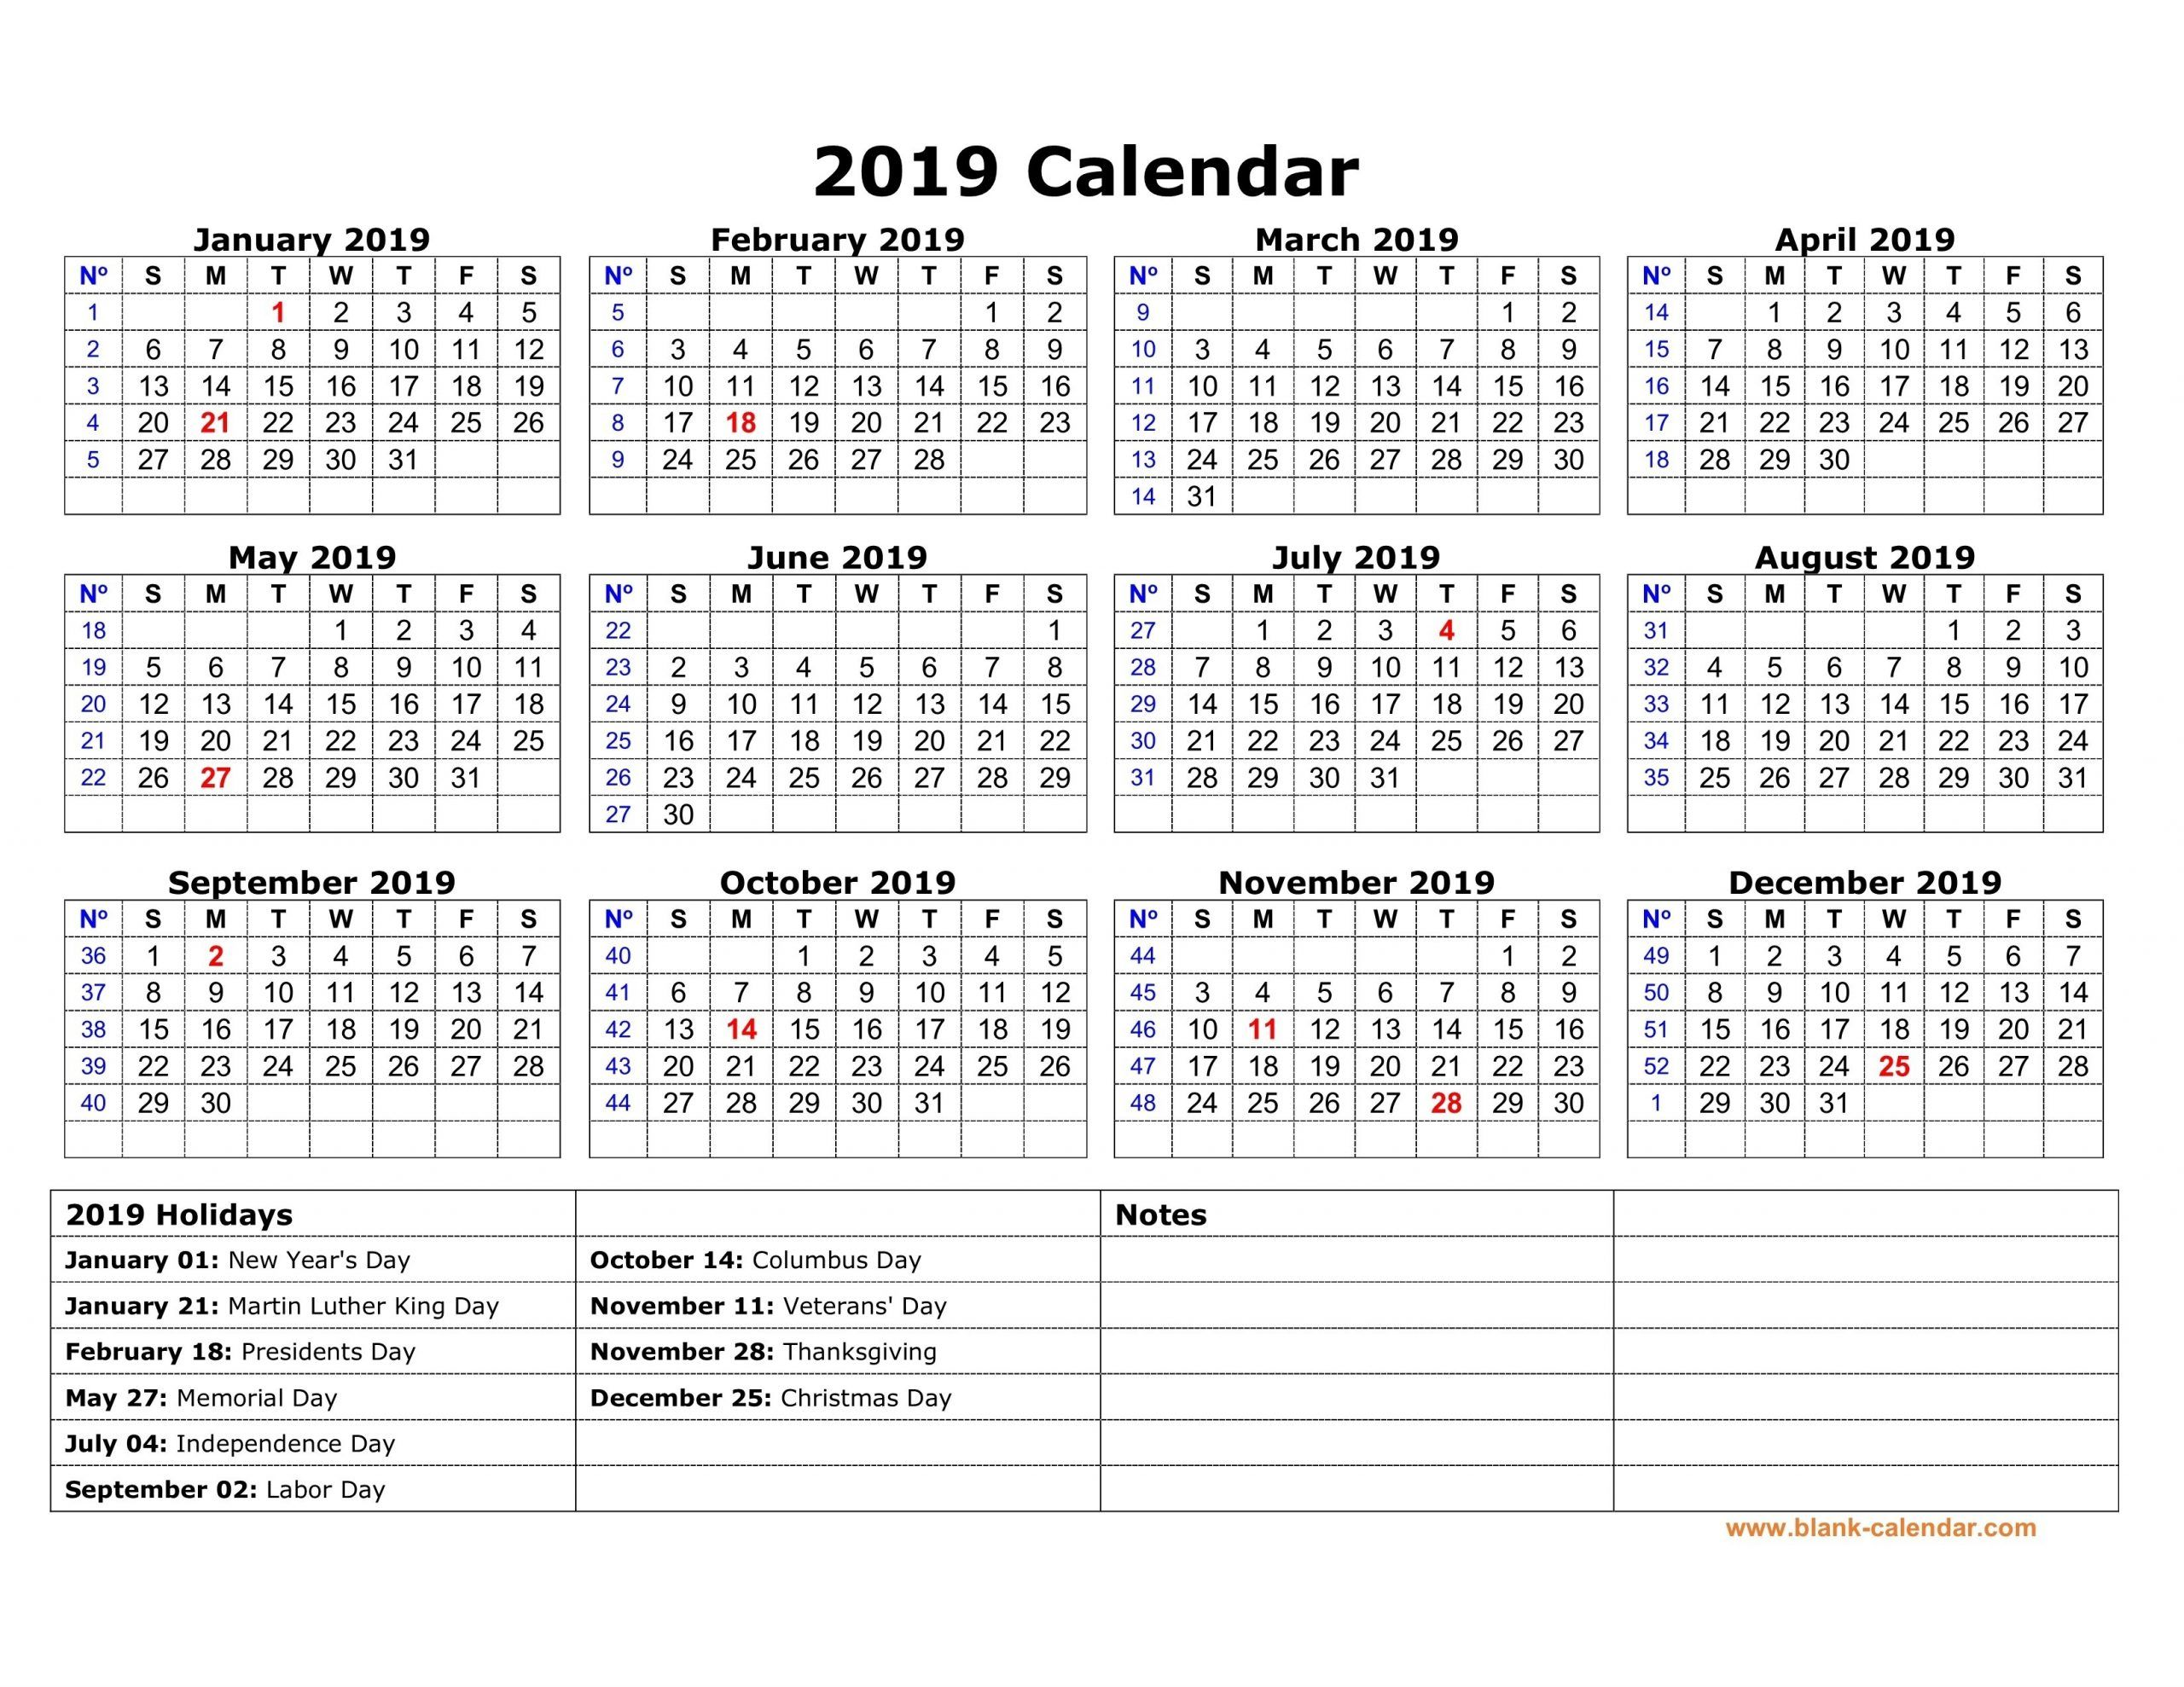 Blank Vacation Calendar Template What Will Blank Vacation Calendar Template Be Like In Calendar 2019 Template Printable Yearly Calendar Free Calendar Template